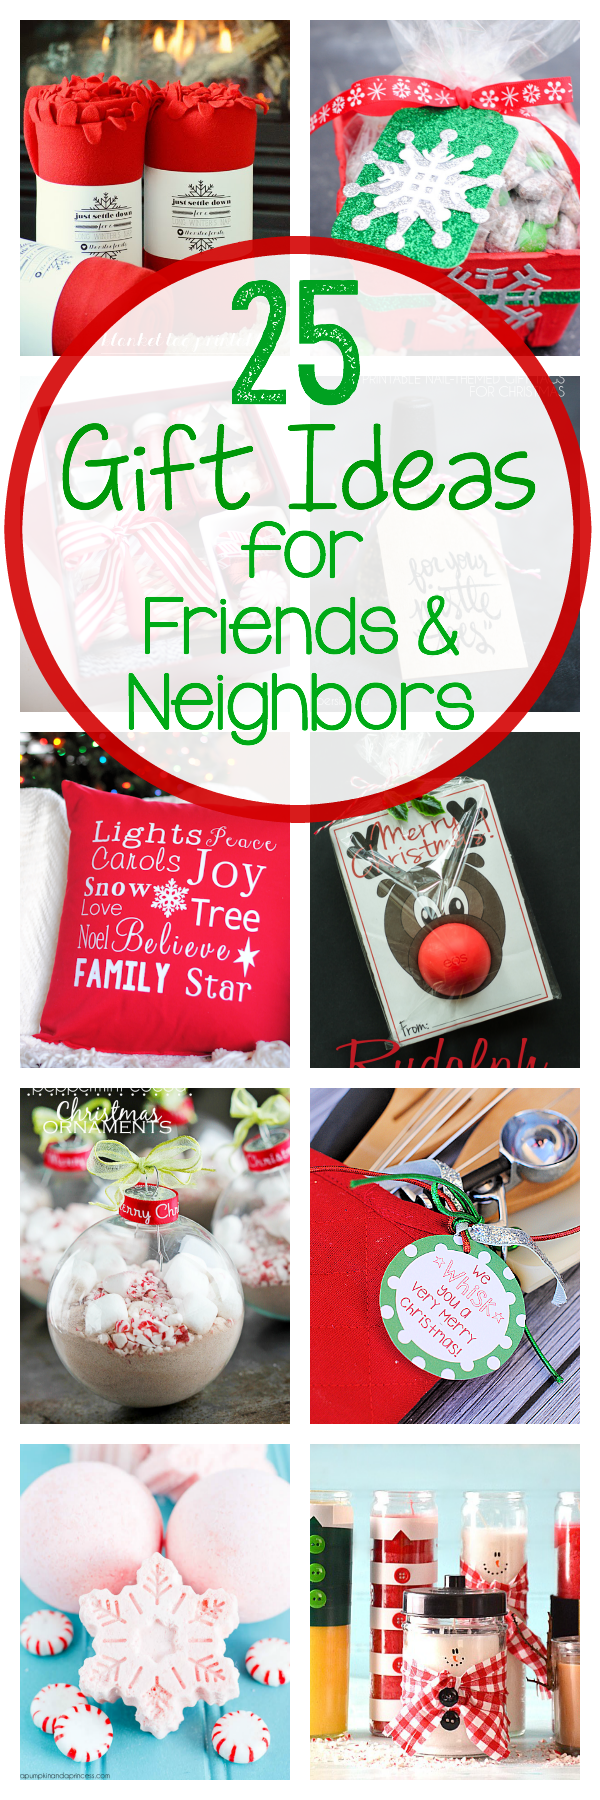 25 gift ideas for friends neighbors crazy little projects for Cute small gifts for friends